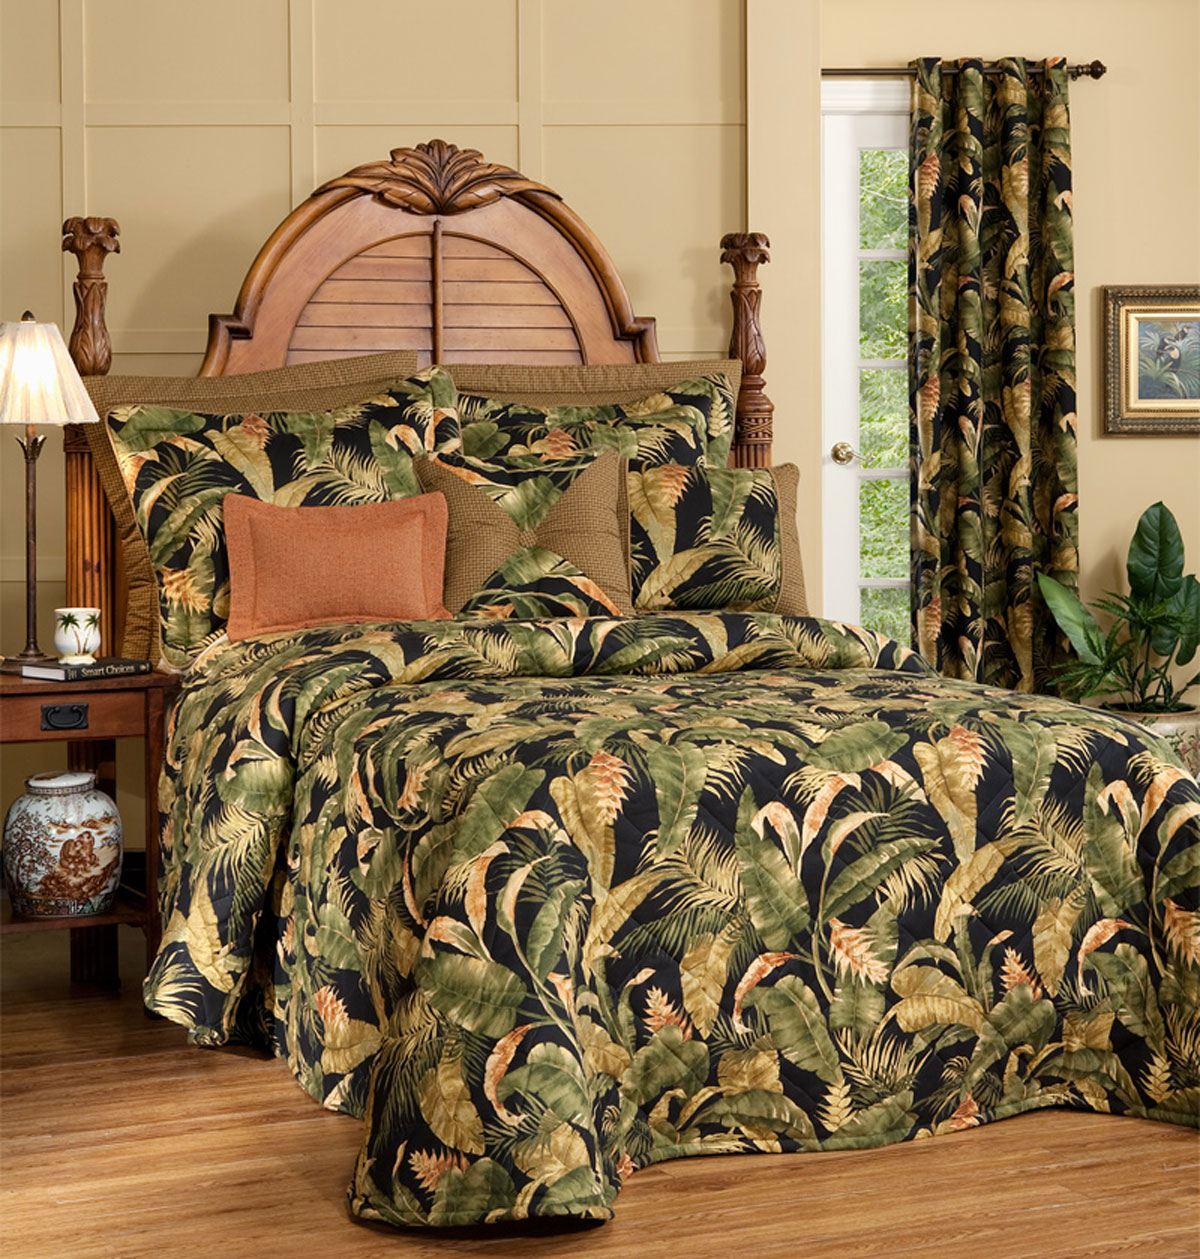 La Selva Black Bedspread by Thomasville Home